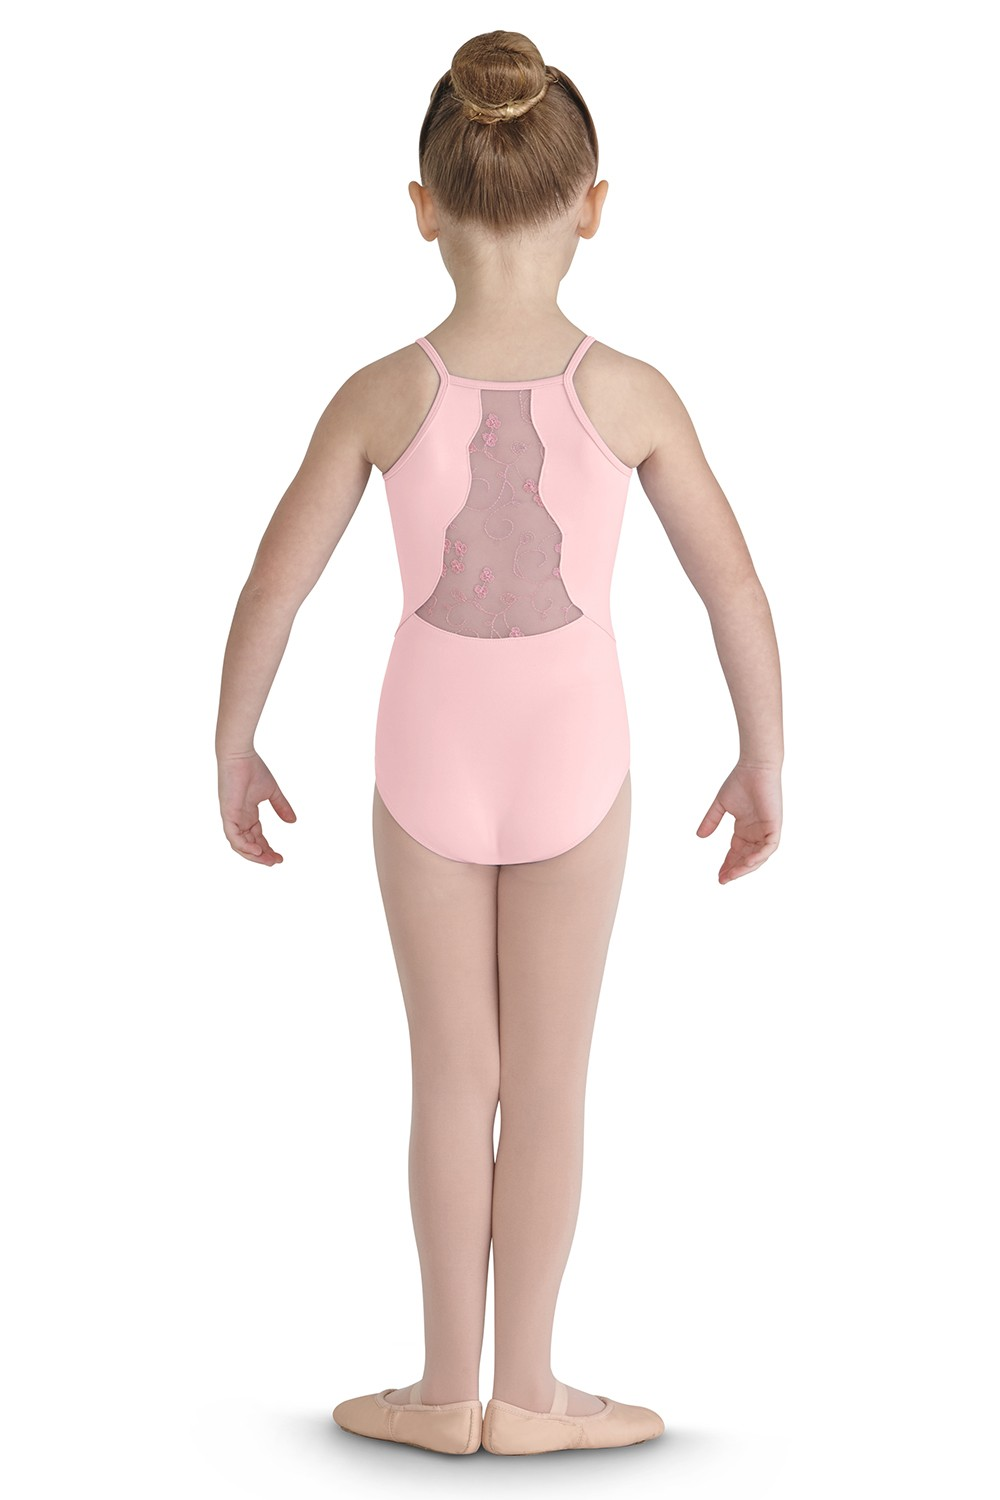 Ancolie Children's Dance Leotards